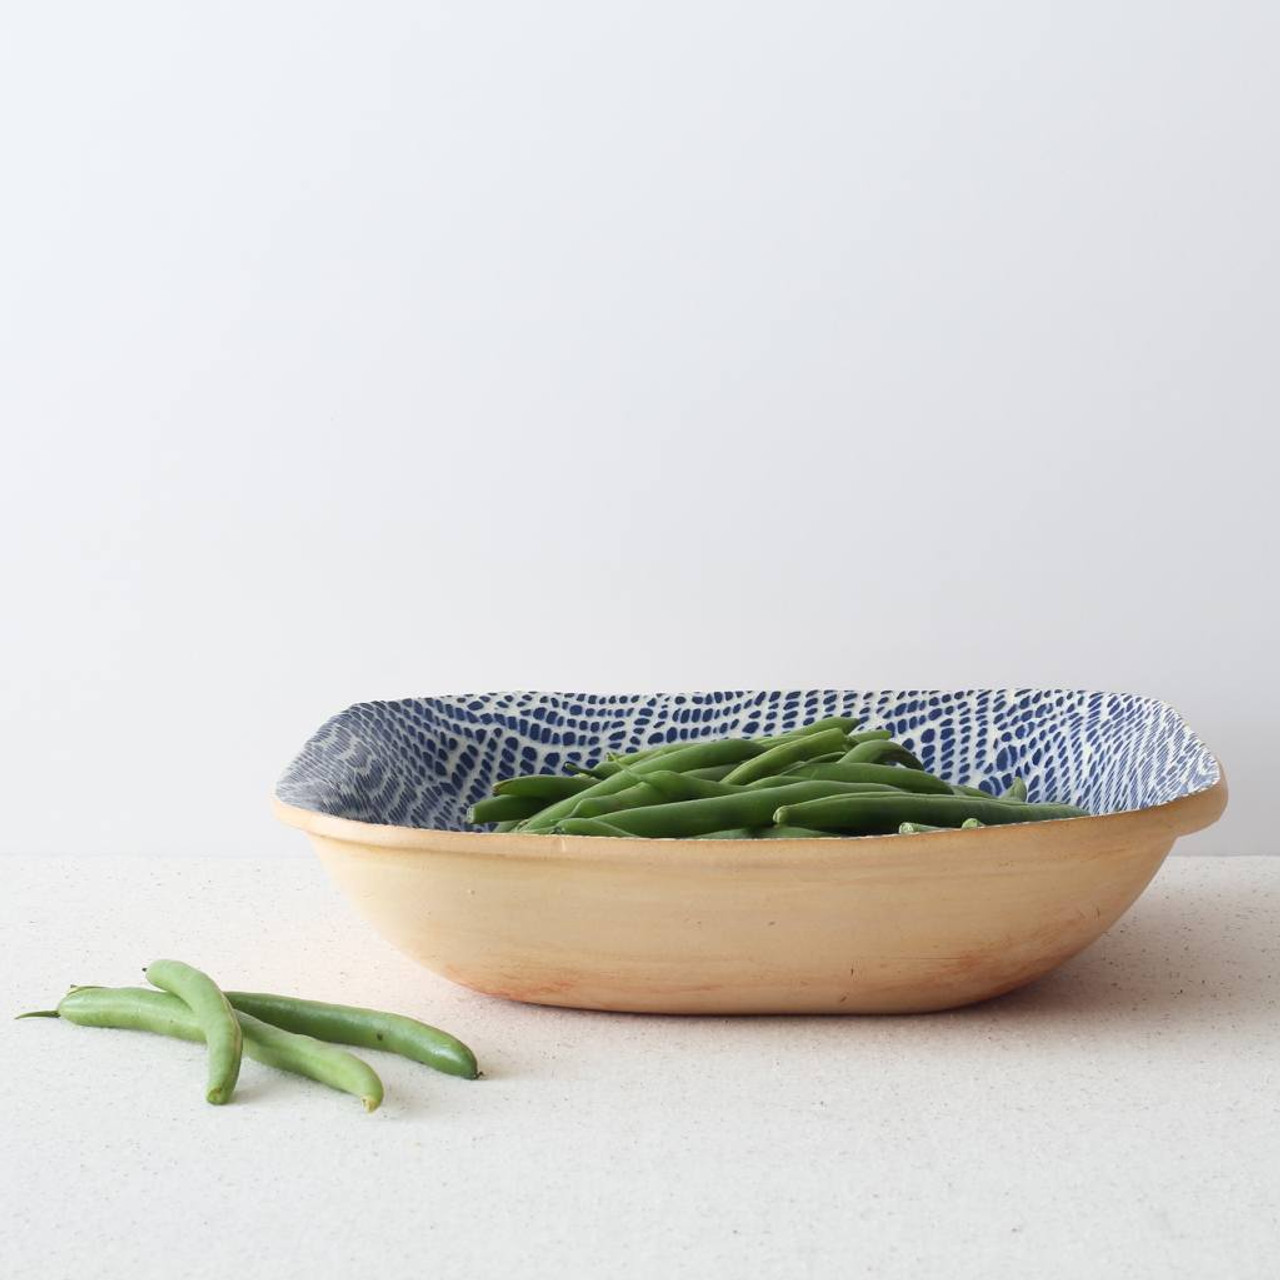 Terrafirma Ceramics - Square Bowl (Cobalt/Braid) with green beans